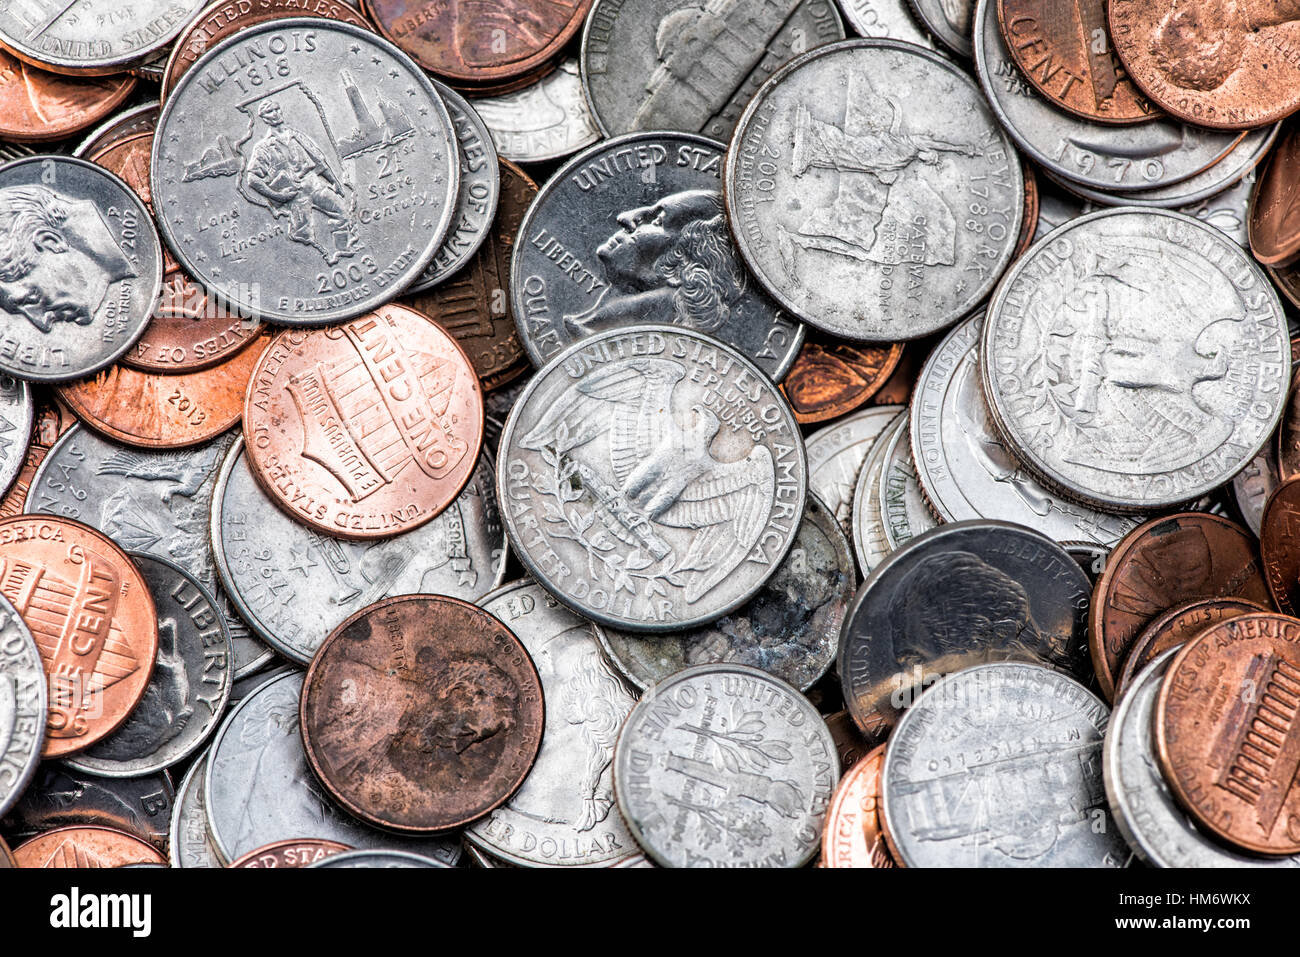 A pile of American currency coins, including quarters, dimes ...